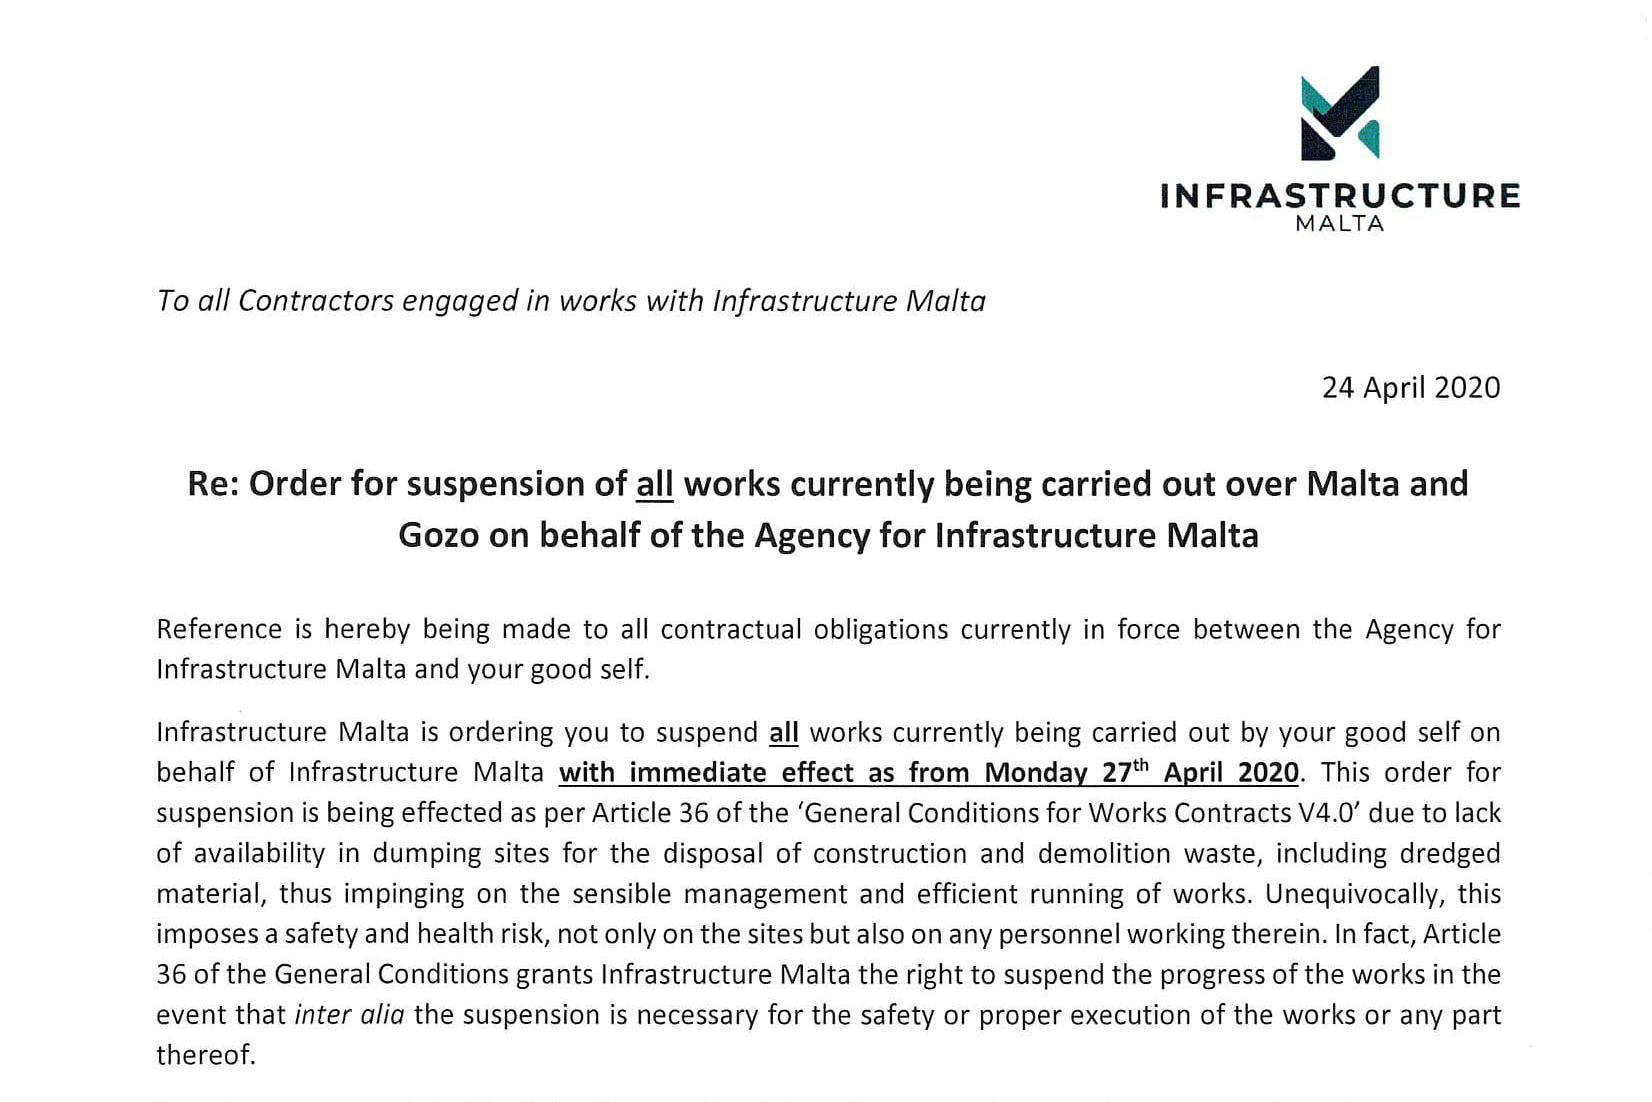 An extract of the letter sent to all contractors.